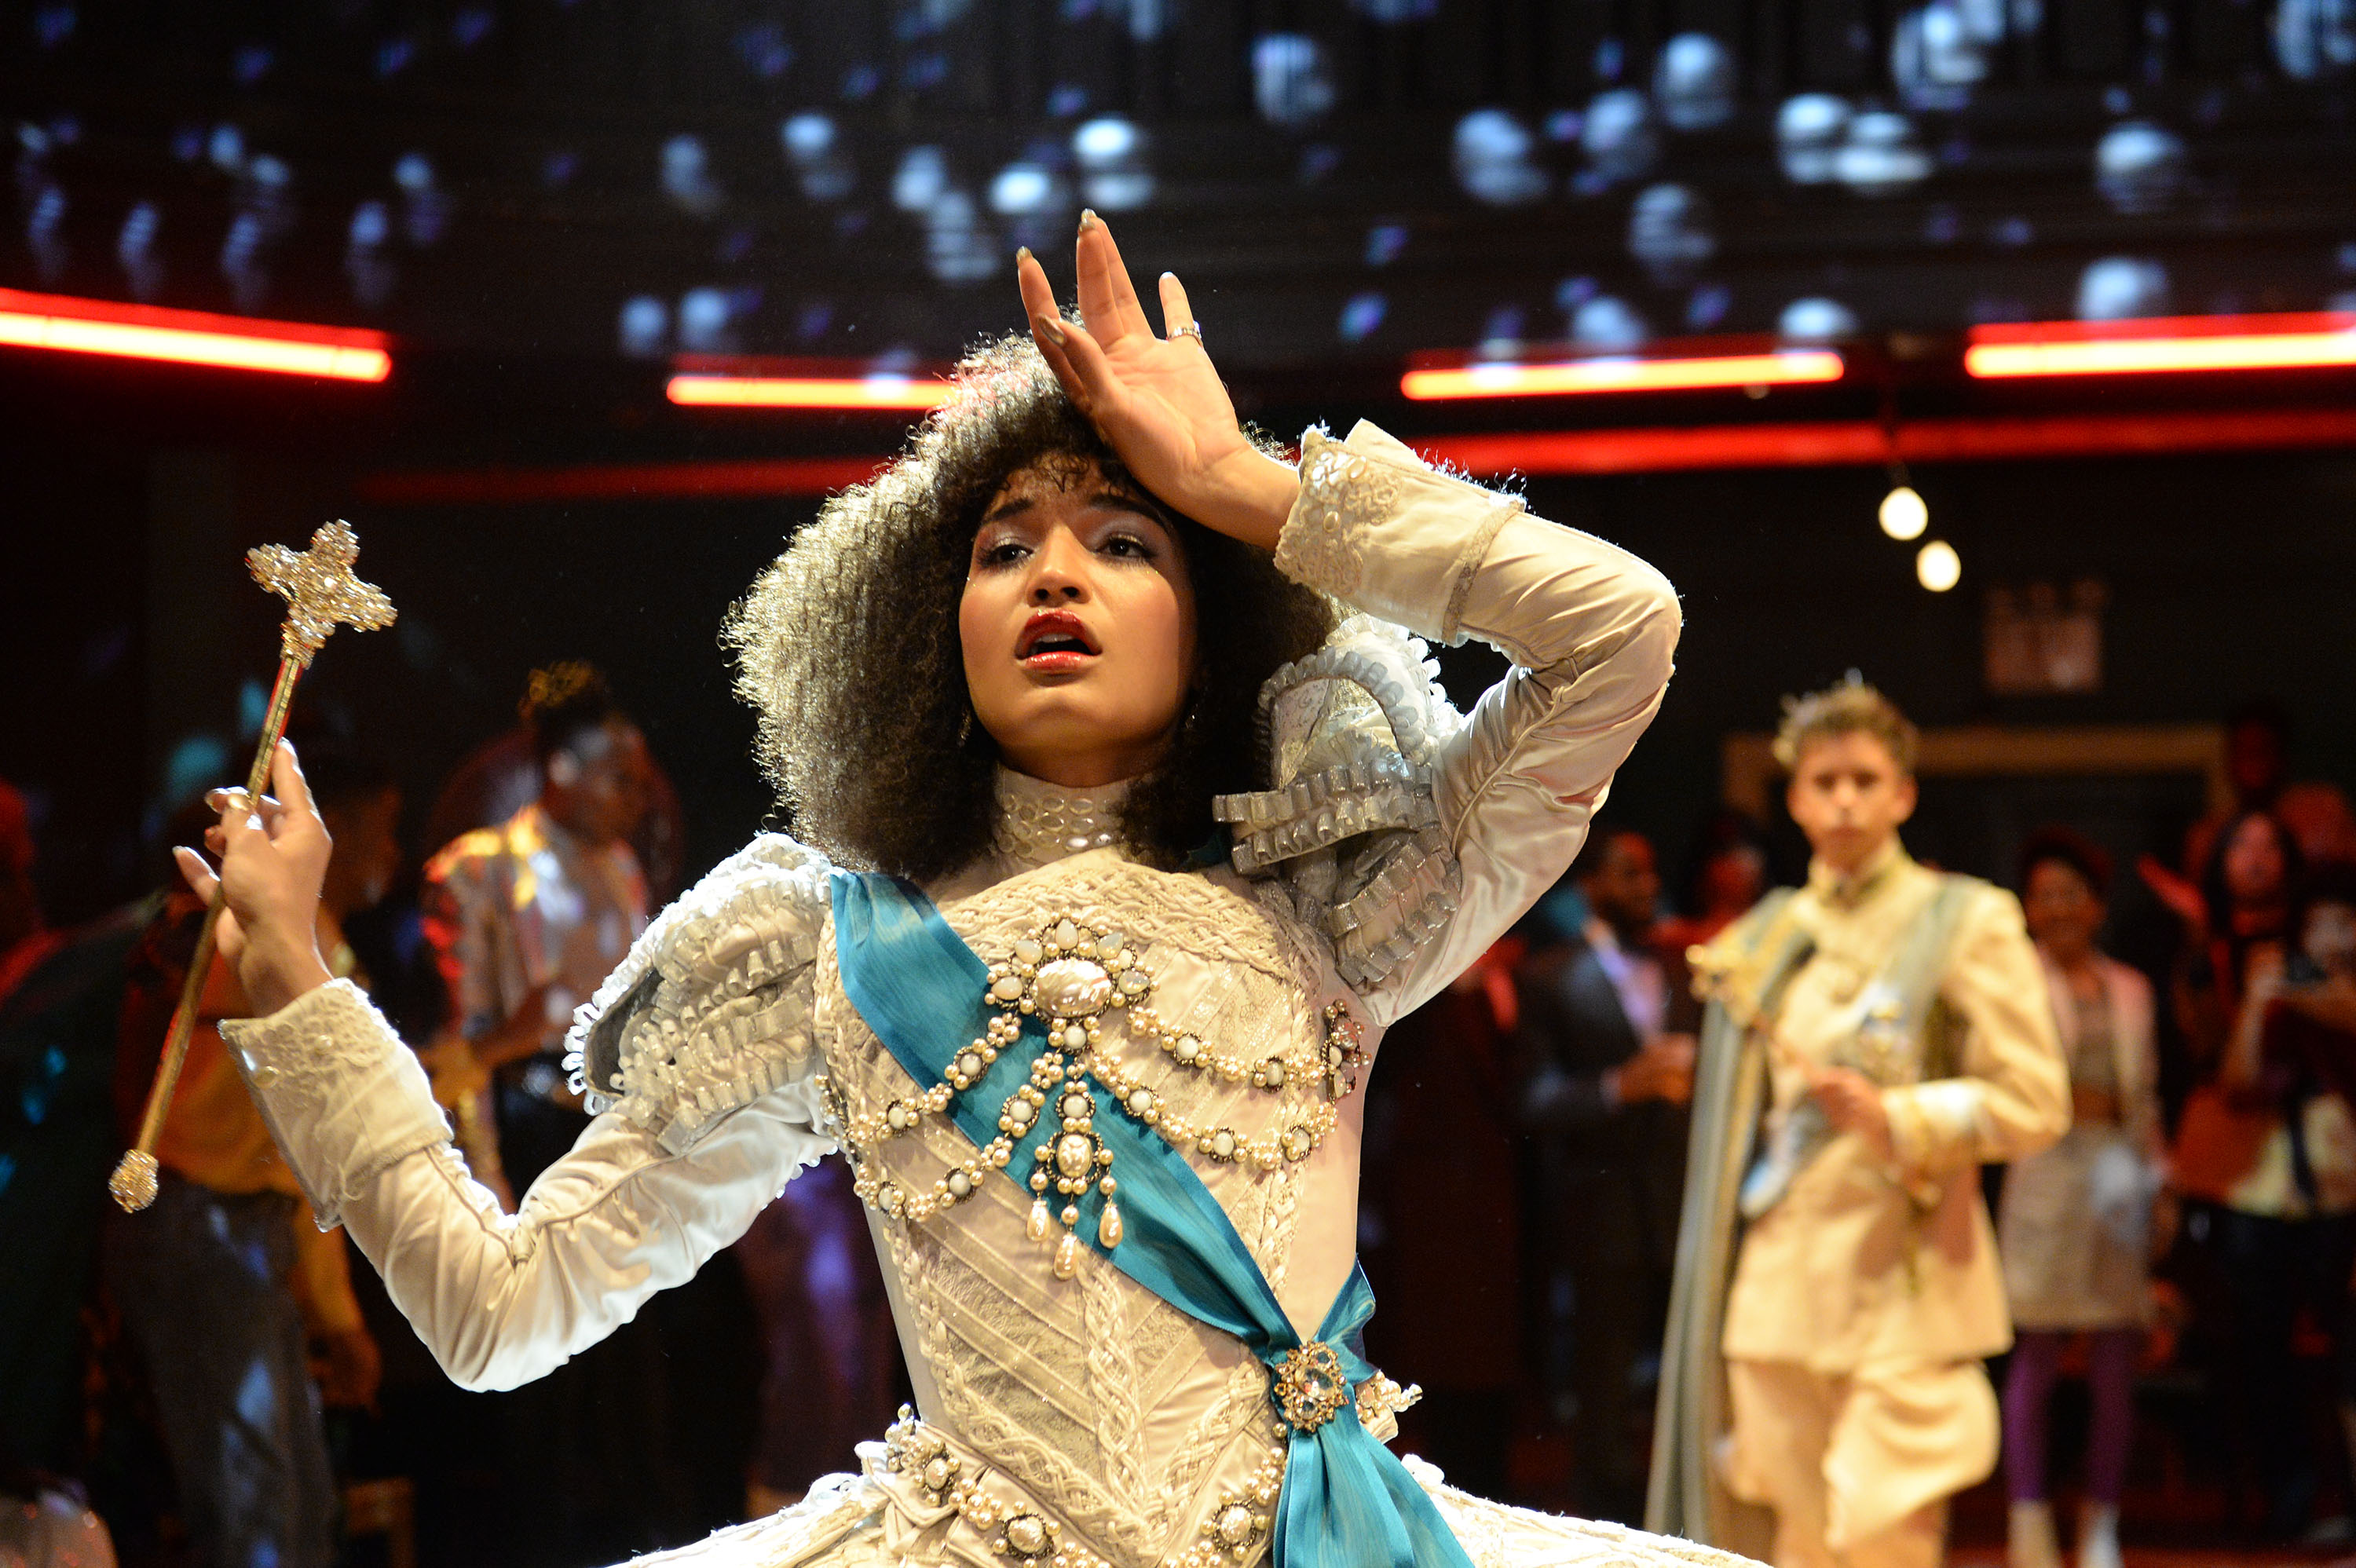 Latino Creator of FX's 'Pose' Was Told His Show About Trans POC Wouldn't Have an Audience